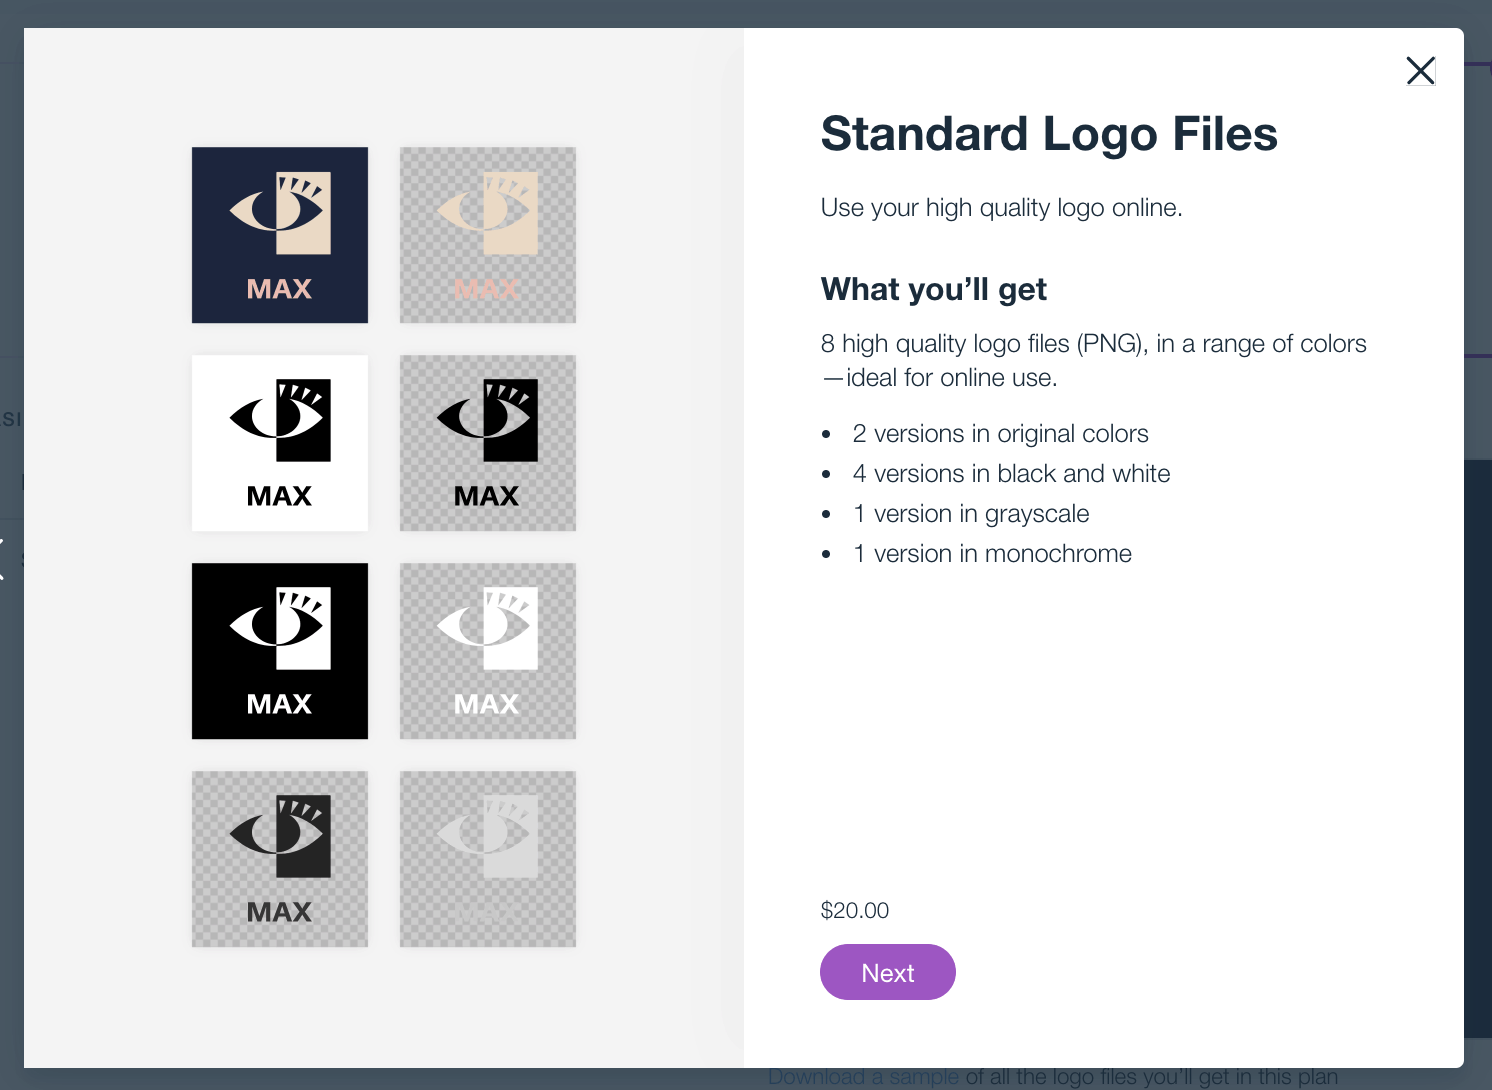 Wix Logo Maker pricing - Standard logo files